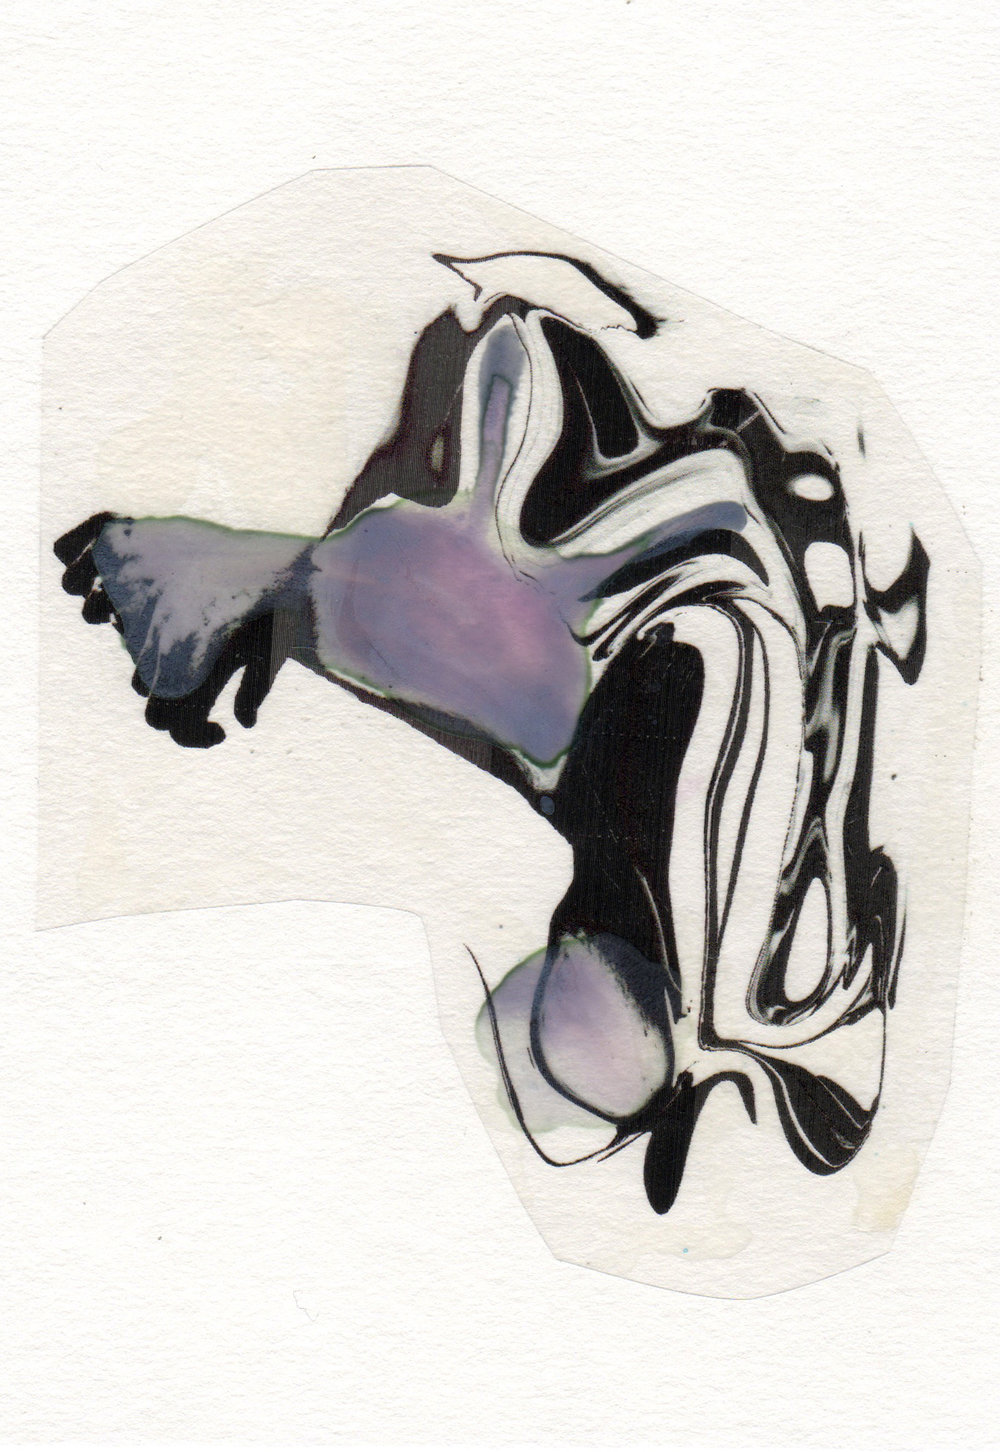 Paralyzer 2015 acrylic watercolor mylar archival ink and paper 5 x 7